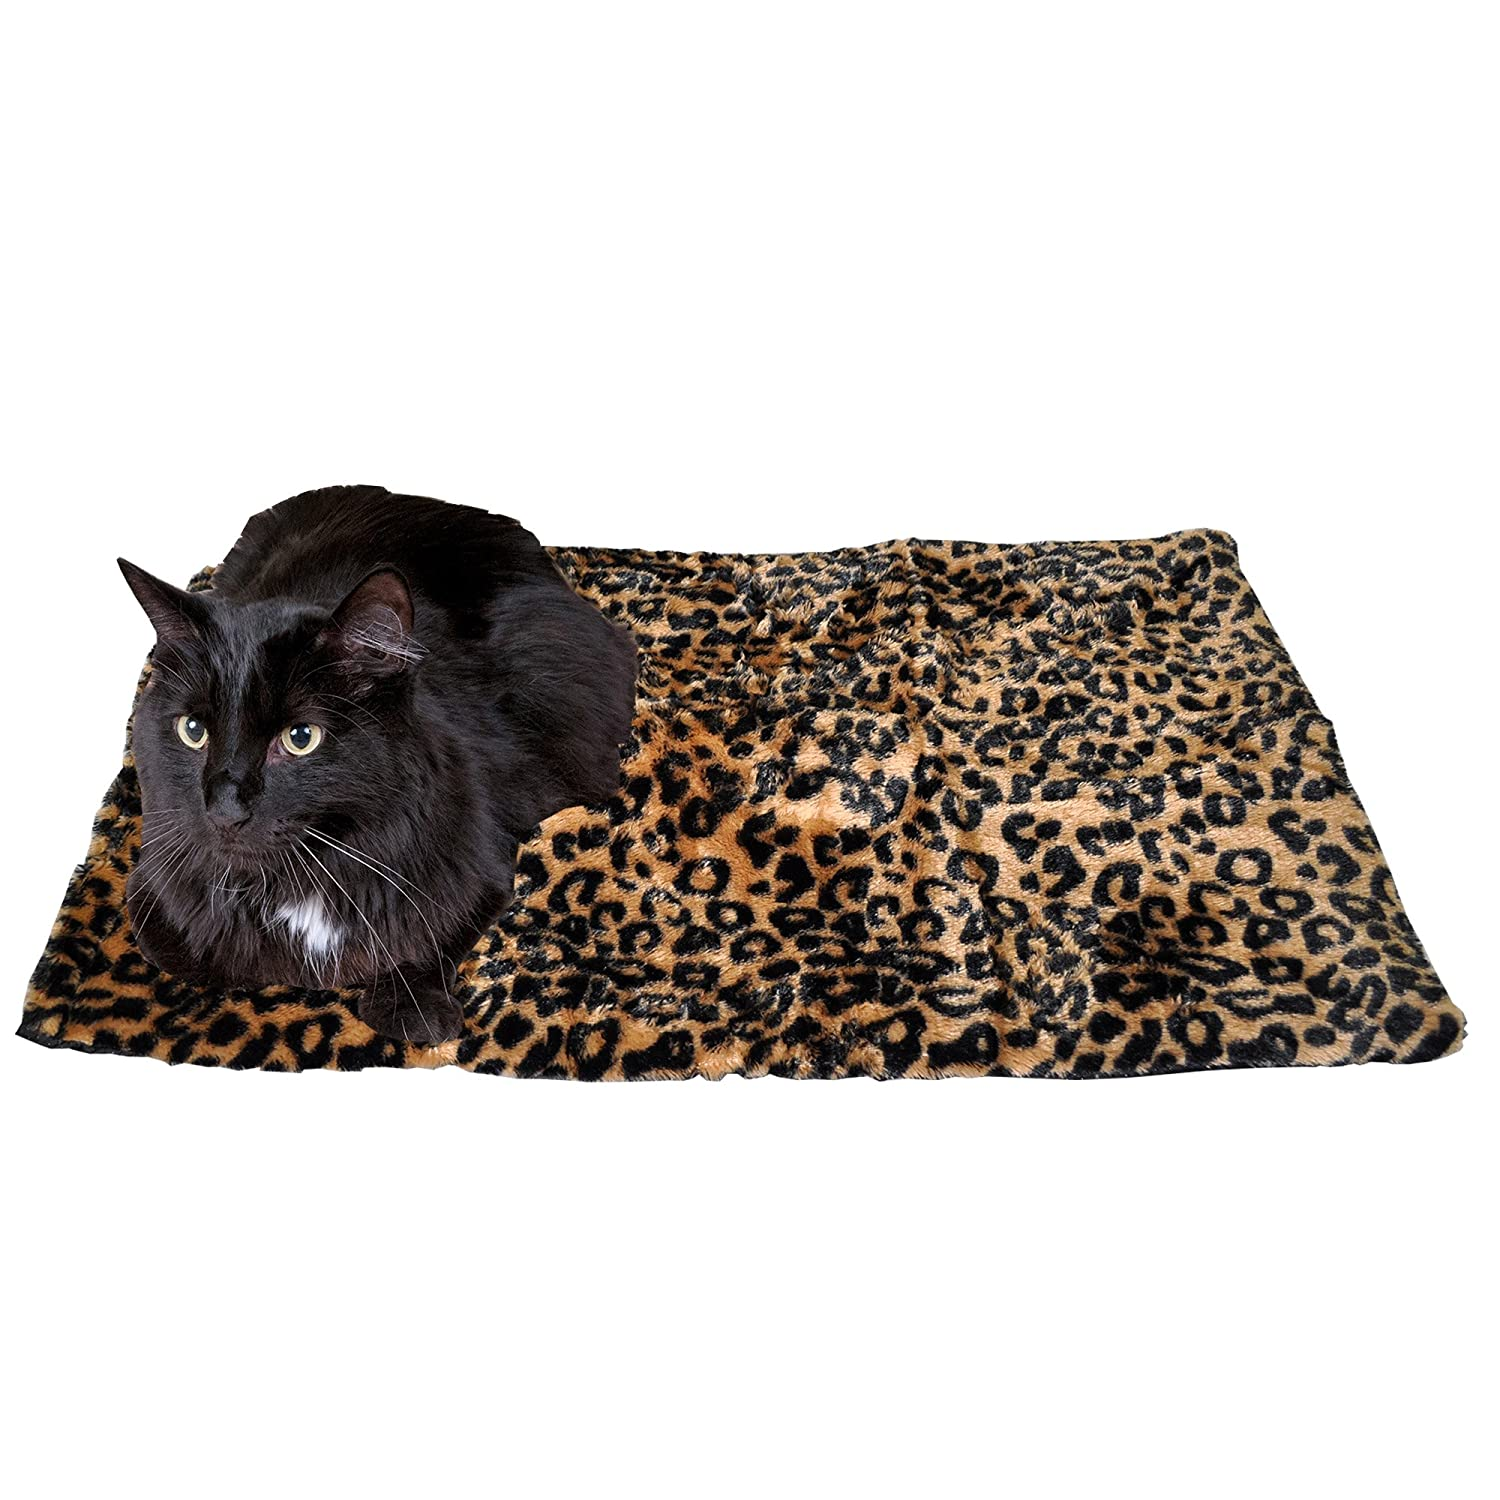 Thermal Cat Pet Dog Warming Bed Mat by Downtown Pet Supply